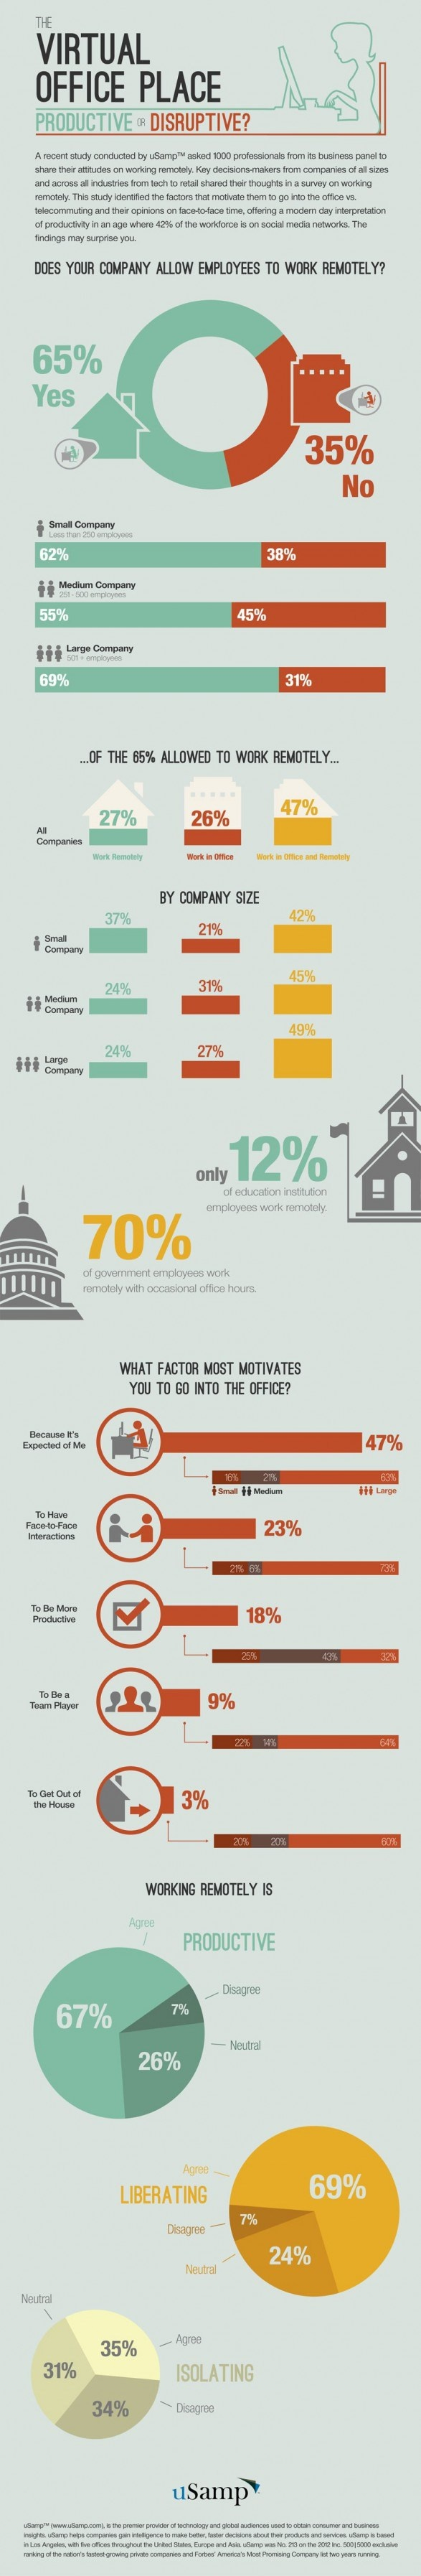 The Virtual Office Place Productive or Disruptive